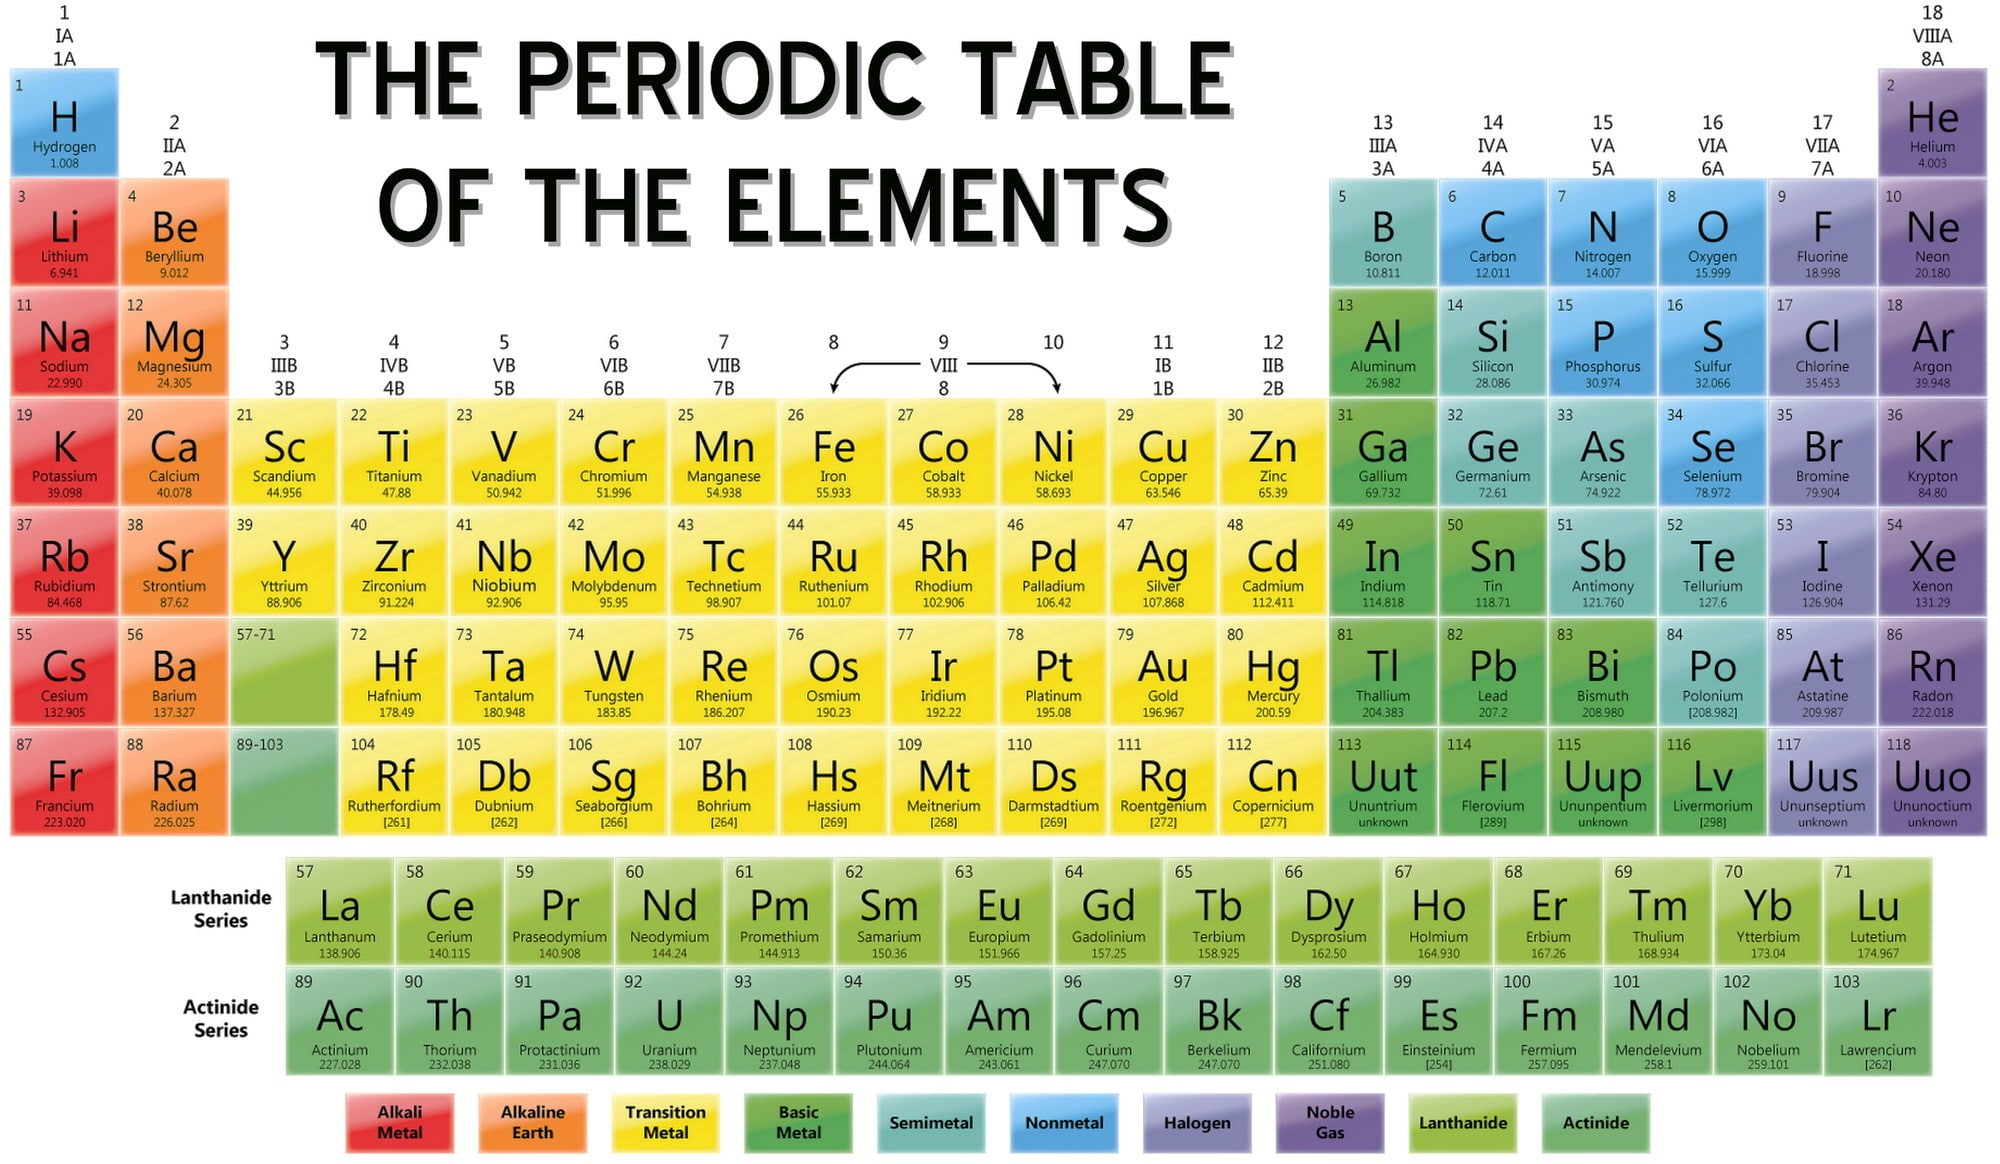 Periodic table of elements ionic bonding mrs zeringues 7th image result for periodic table of elements gamestrikefo Gallery